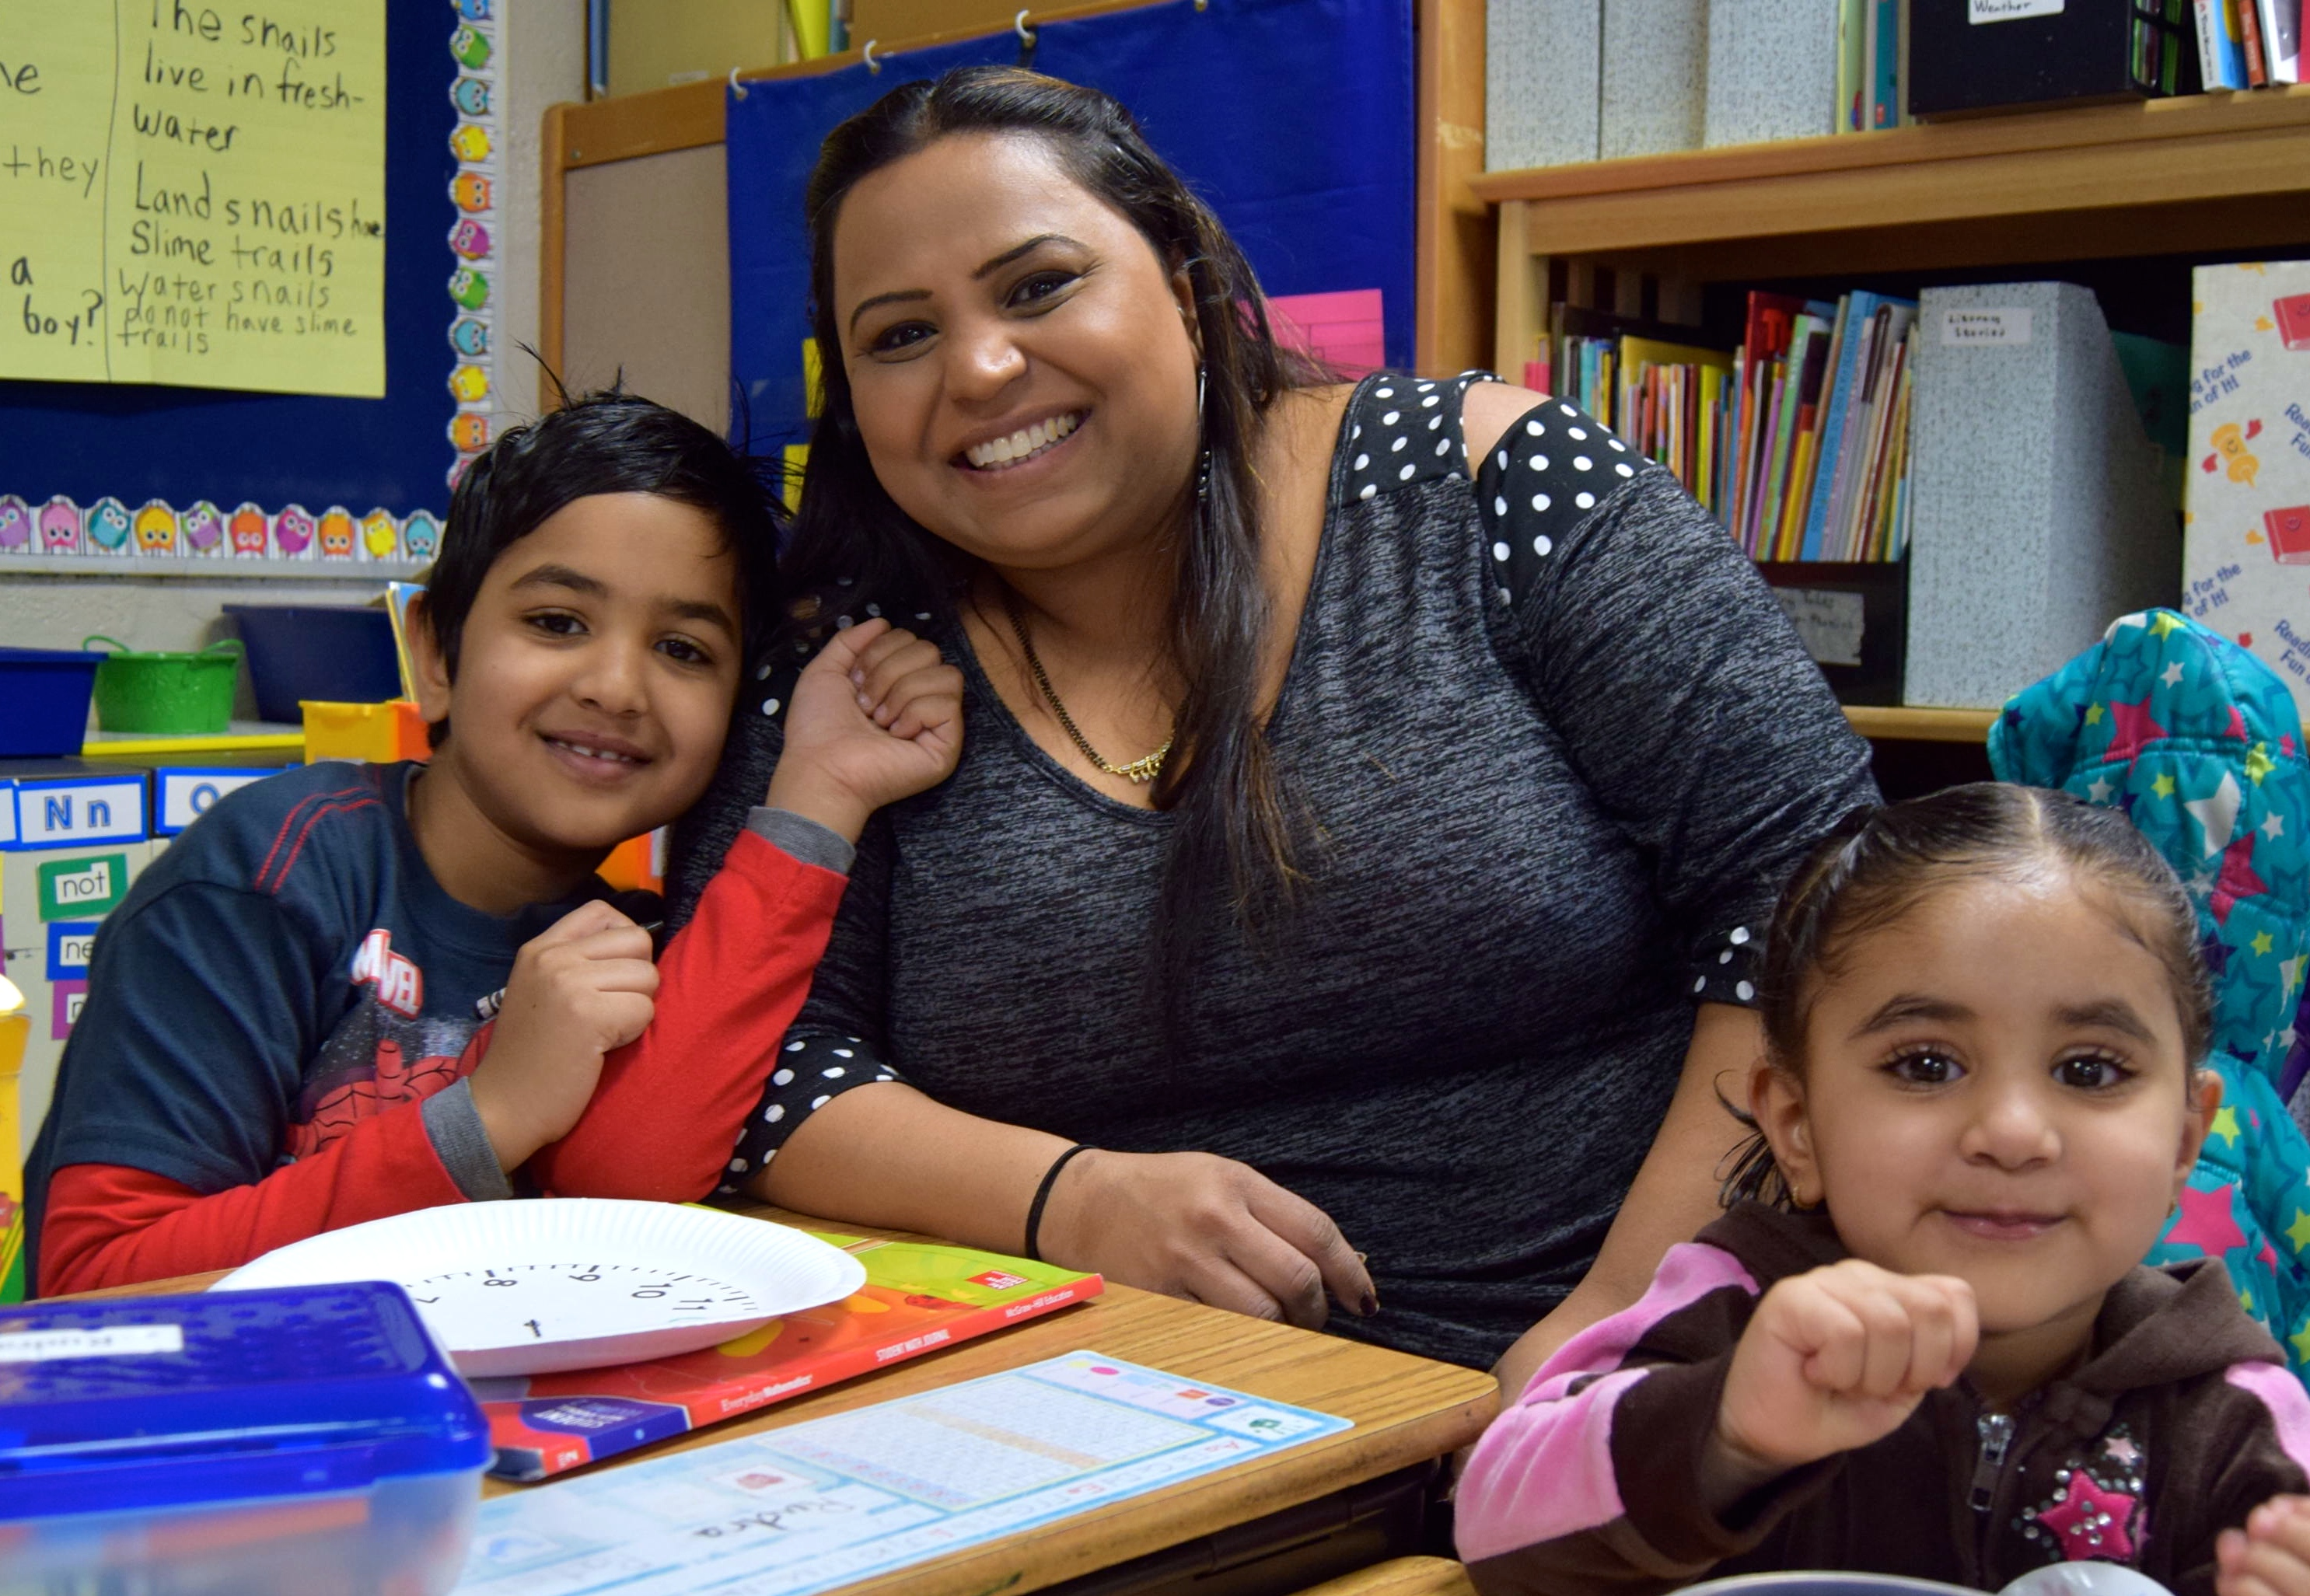 A mother and her two children in a bright school room setting.